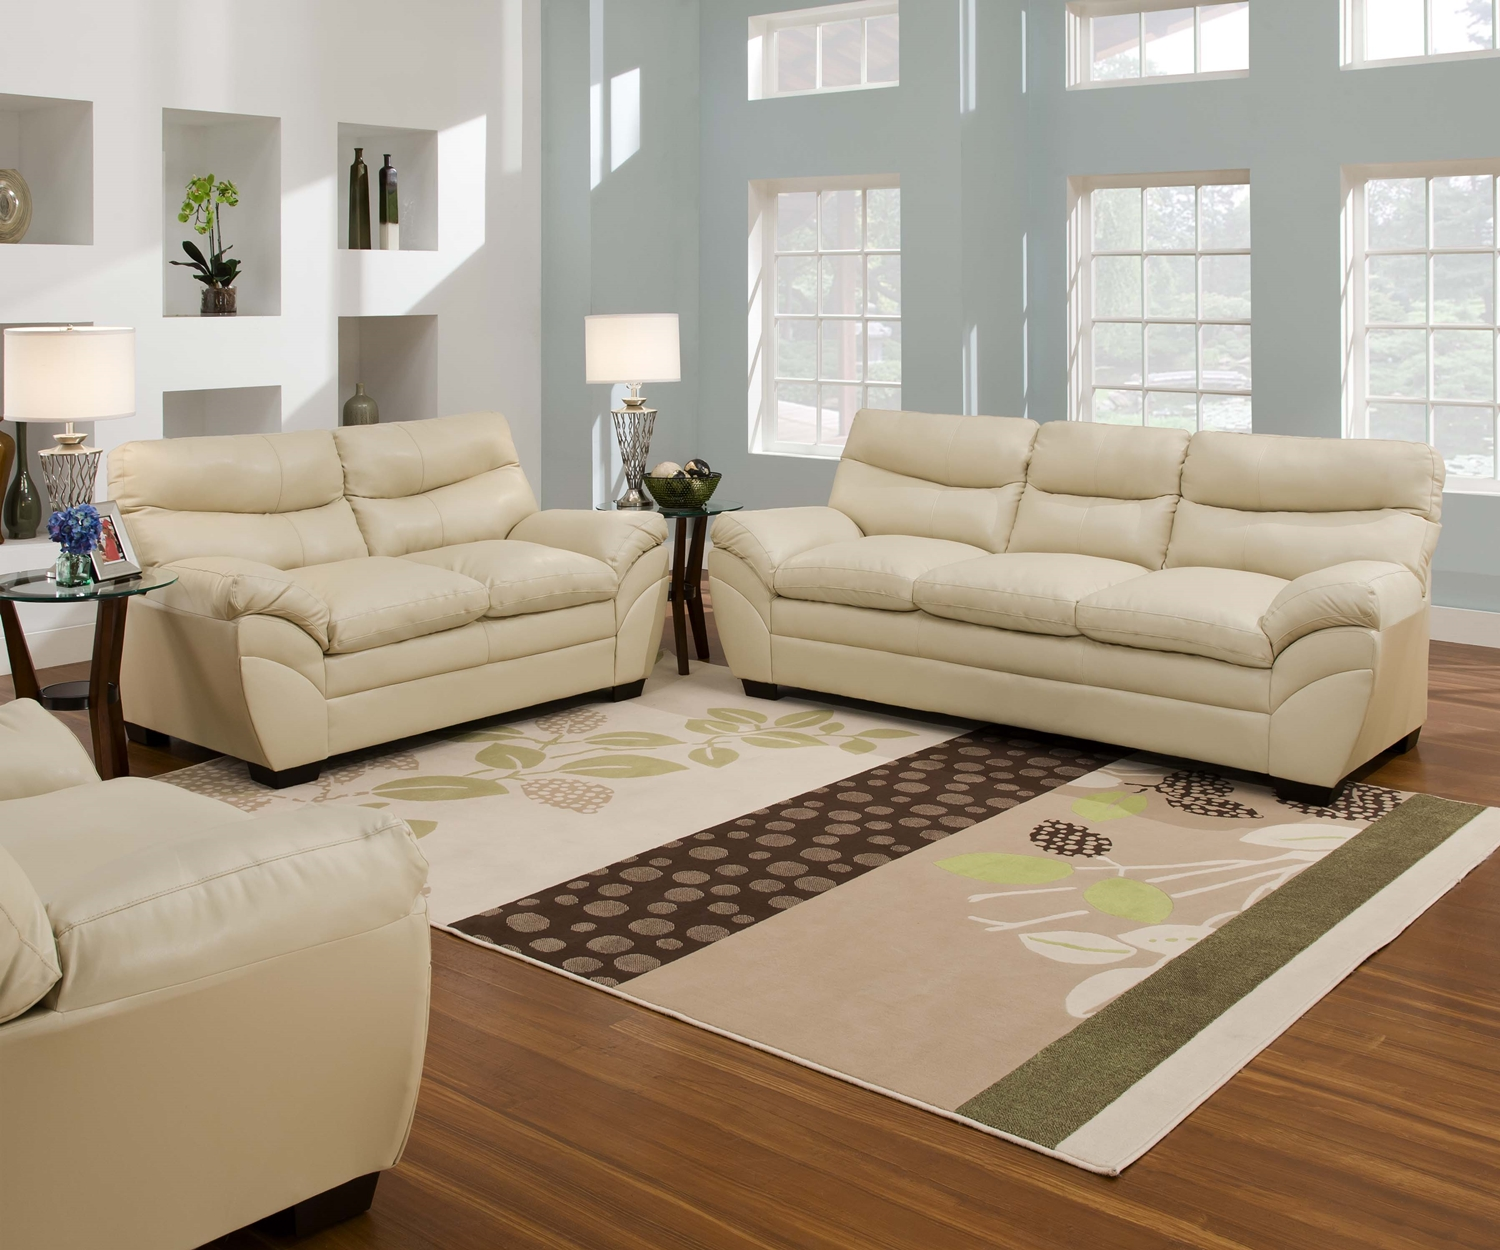 Cream living room furniture modern house for Leather living room furniture